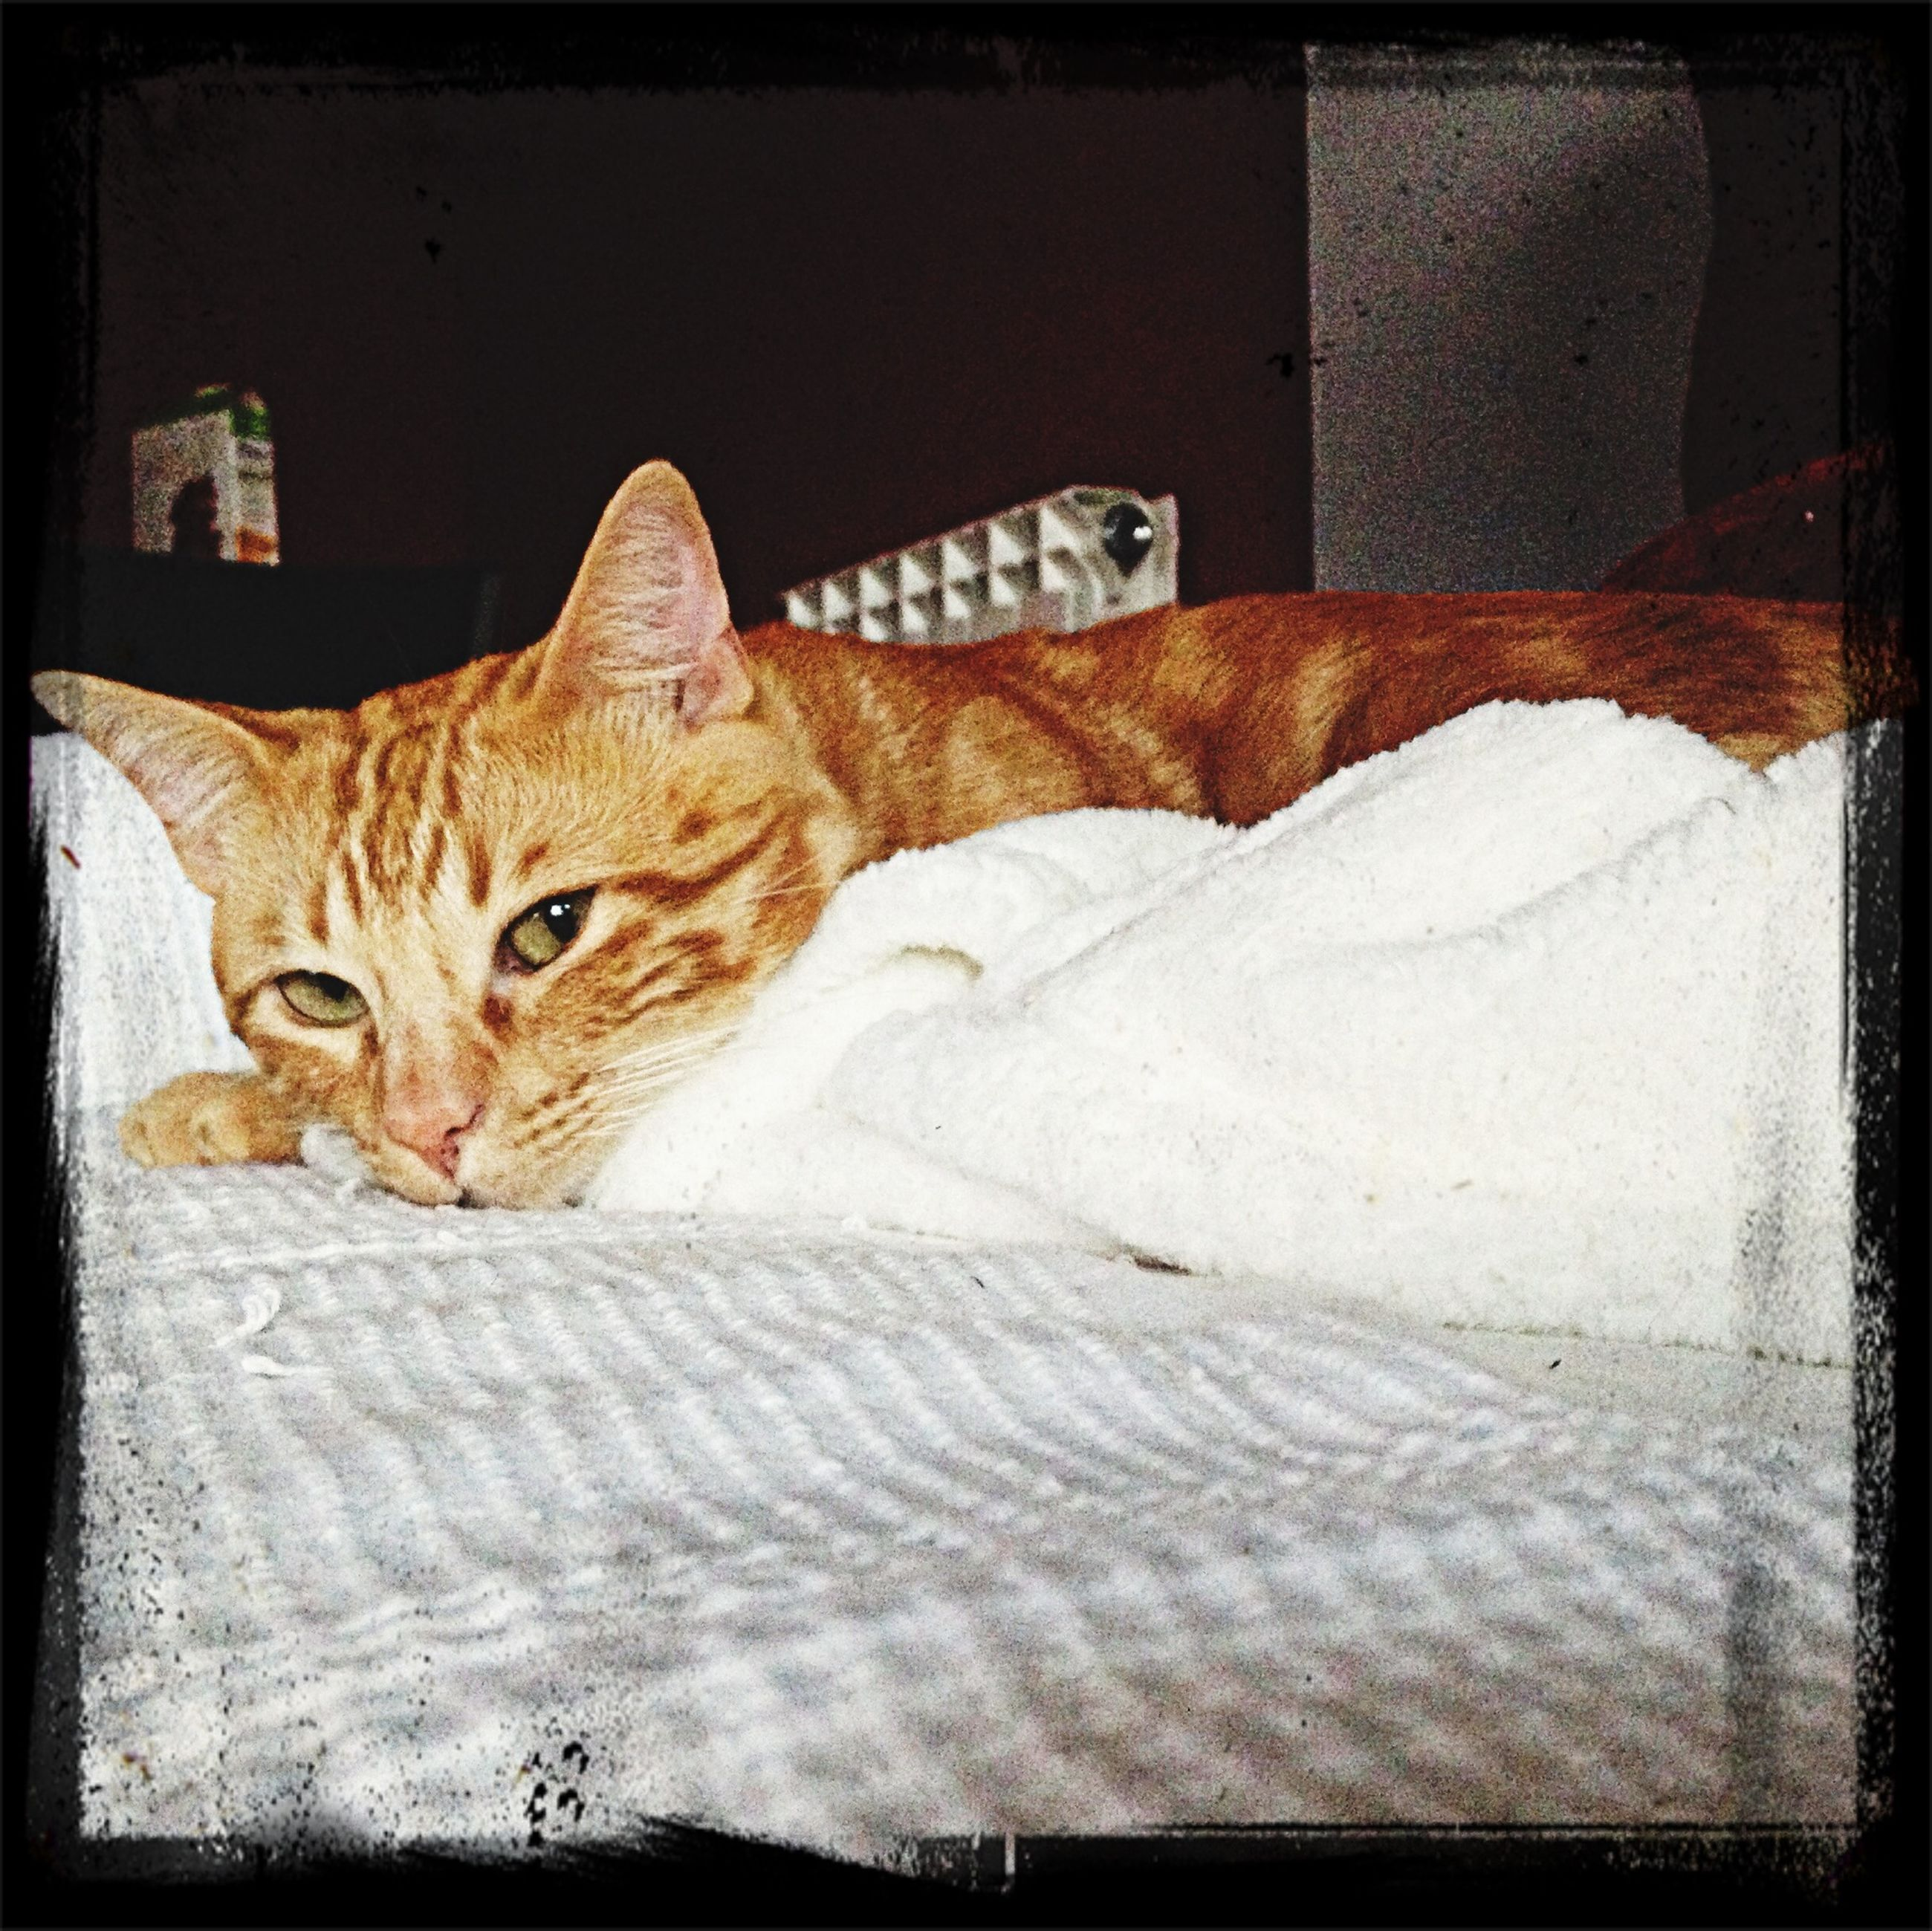 domestic cat, cat, domestic animals, pets, animal themes, one animal, feline, mammal, relaxation, whisker, portrait, looking at camera, transfer print, resting, lying down, indoors, auto post production filter, alertness, sitting, staring